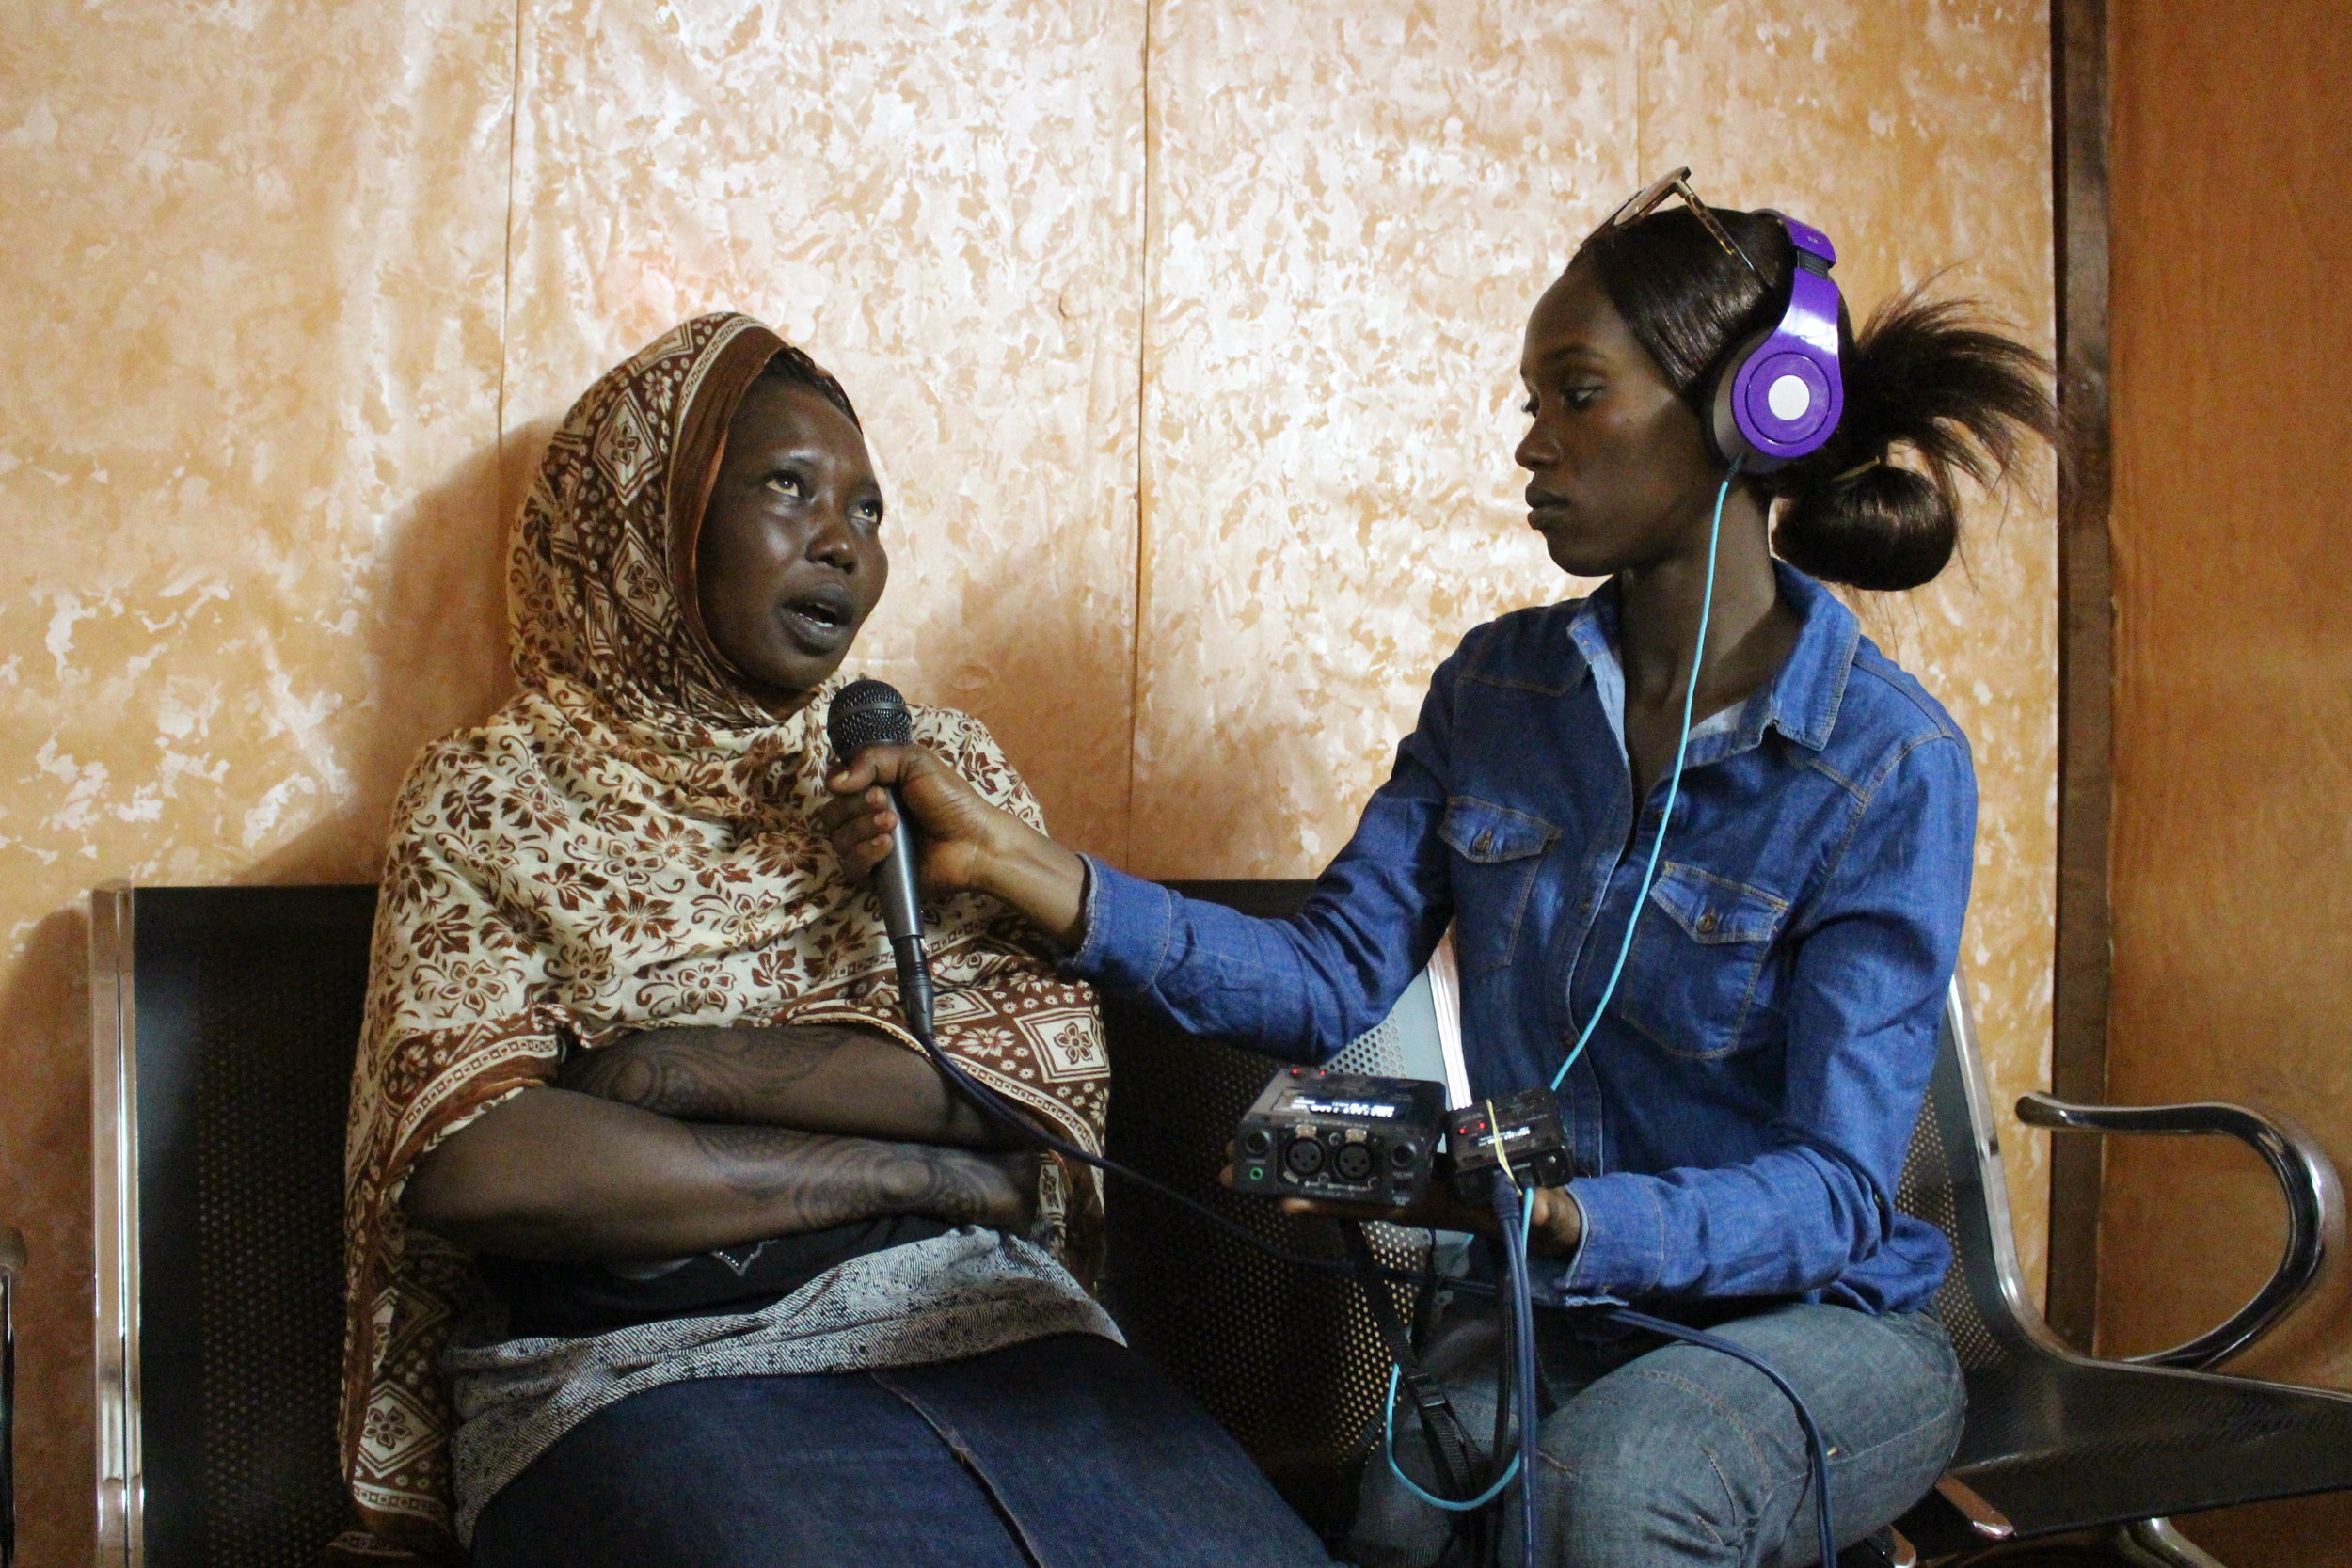 My People, Our Stories: South sudan - South Sudanese journalists film their first ever 360º videos, opening a window into everyday life in Juba through the locals' eyes.